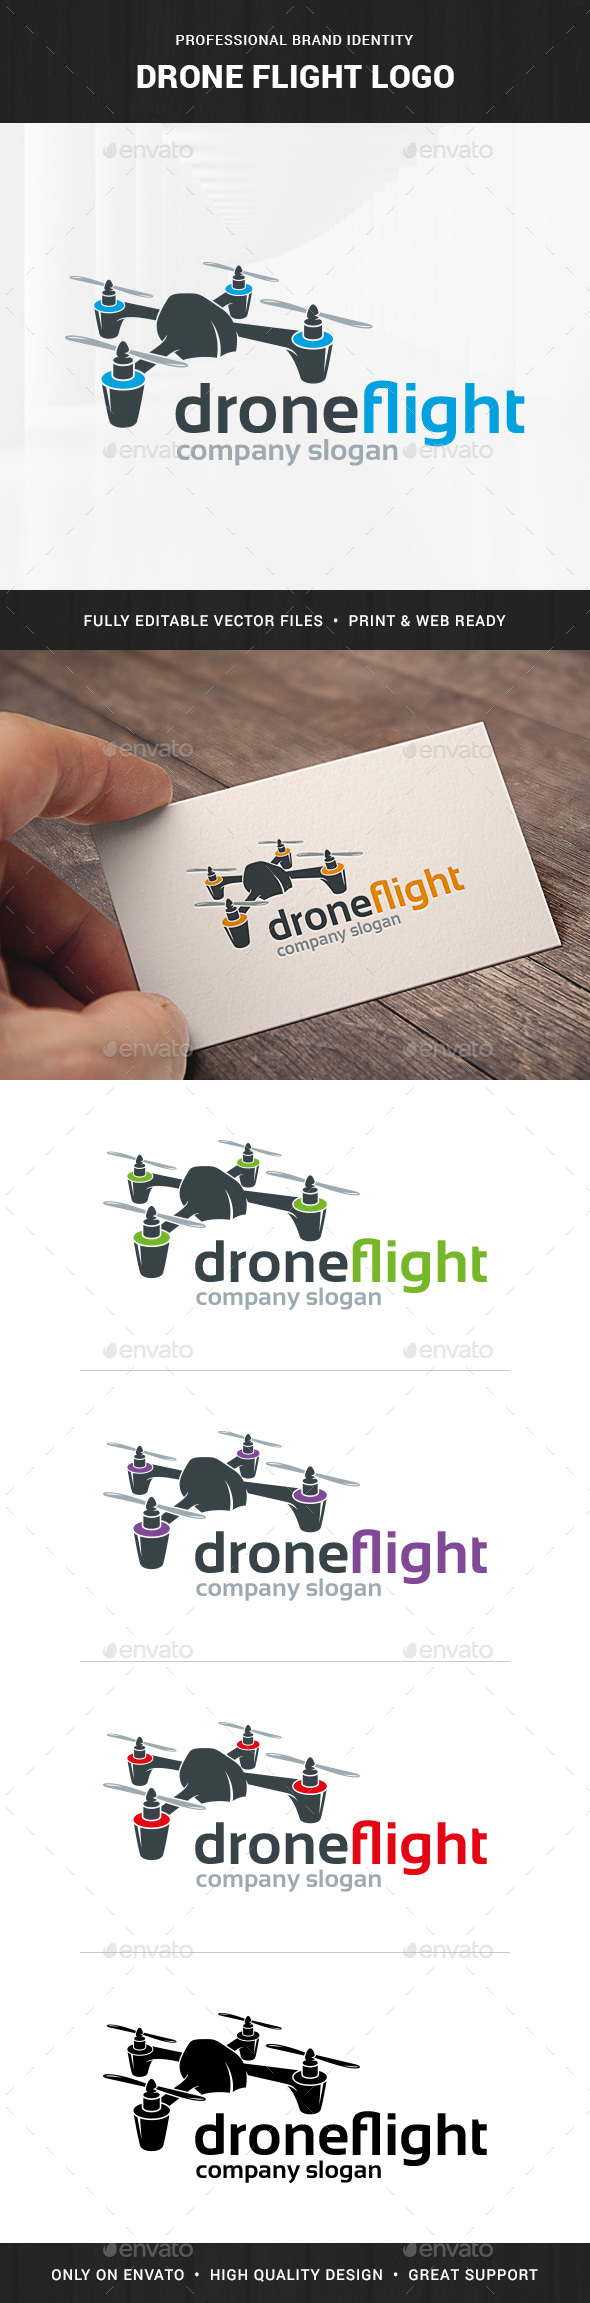 Drone Flight Logo Template - Objects Logo Templates